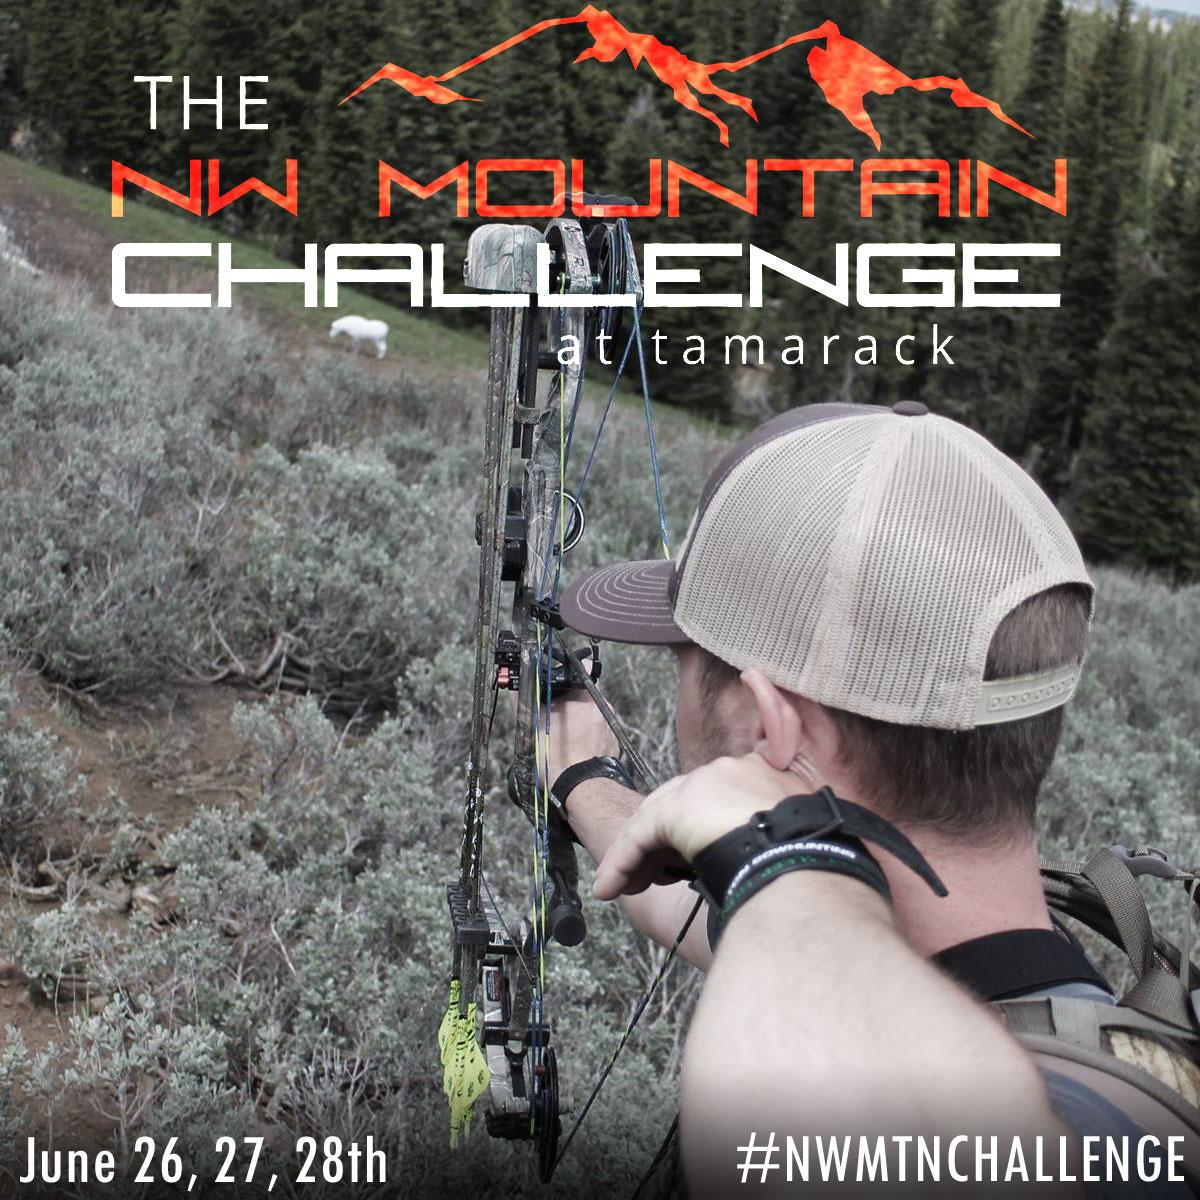 Can't wait for the NW Mountain Challenge shoot this summer!  I'll be there...how about you?  http://t.co/DWkdNF7kPD http://t.co/AW5GeadEKU